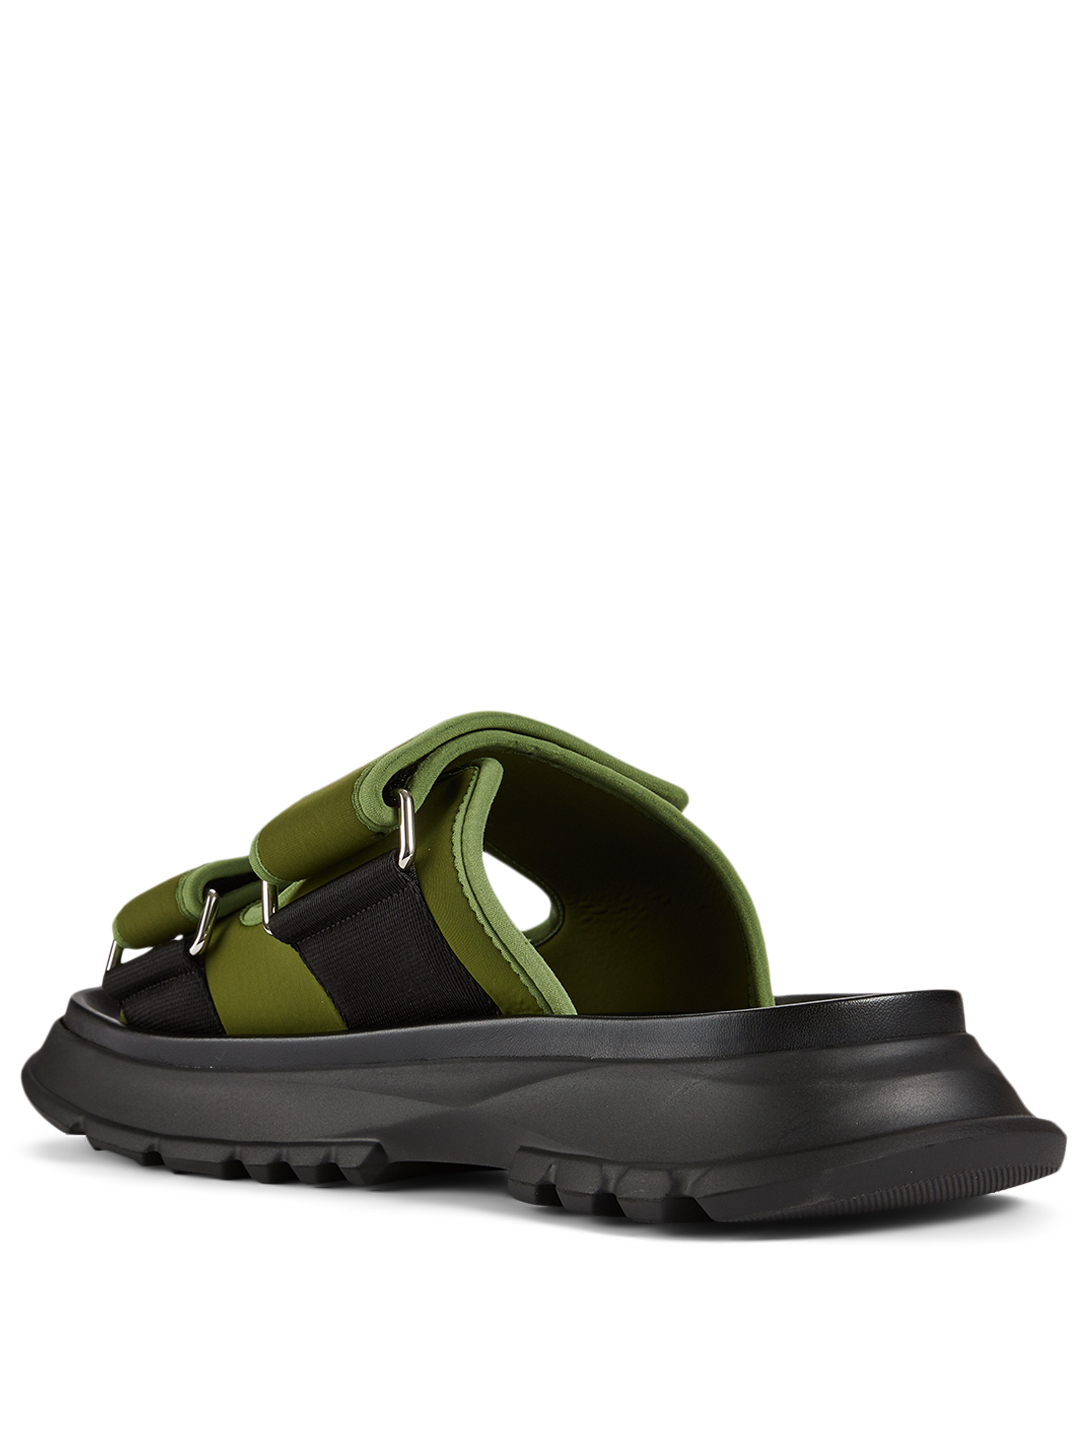 GIVENCHY Spectre Neoprene Slide Sandals Men's Green